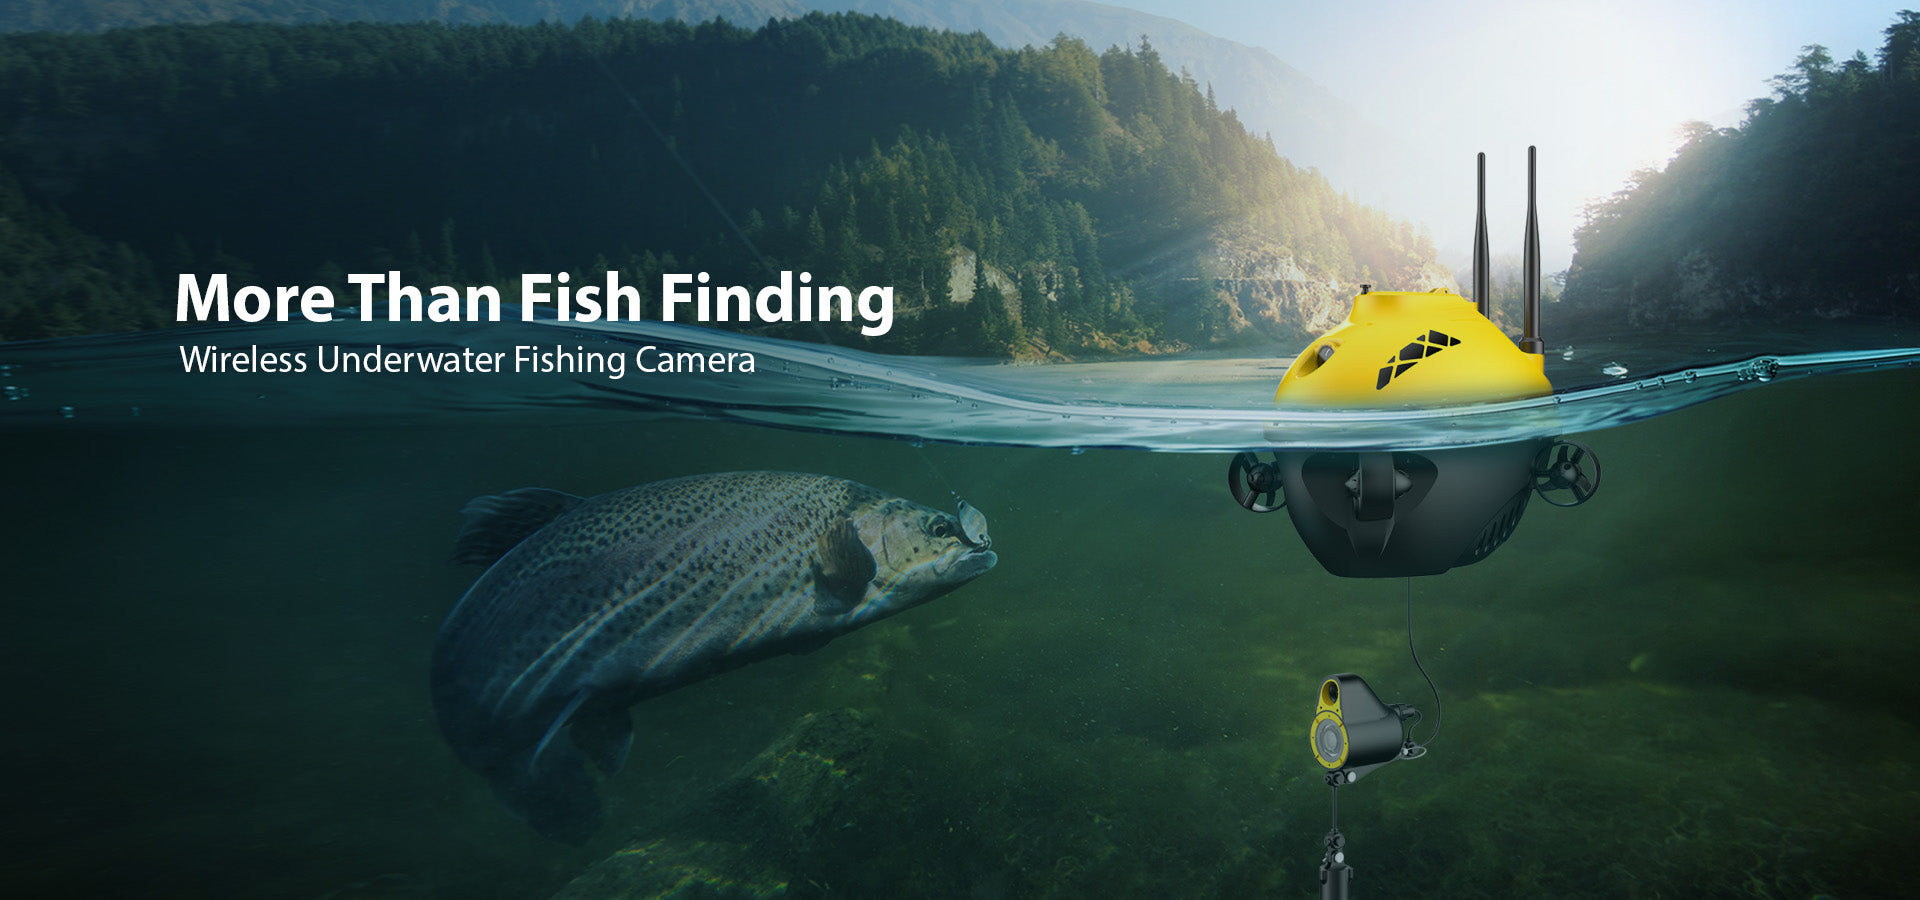 Product Showcase of CHASING F1 Fish finder catching a fish